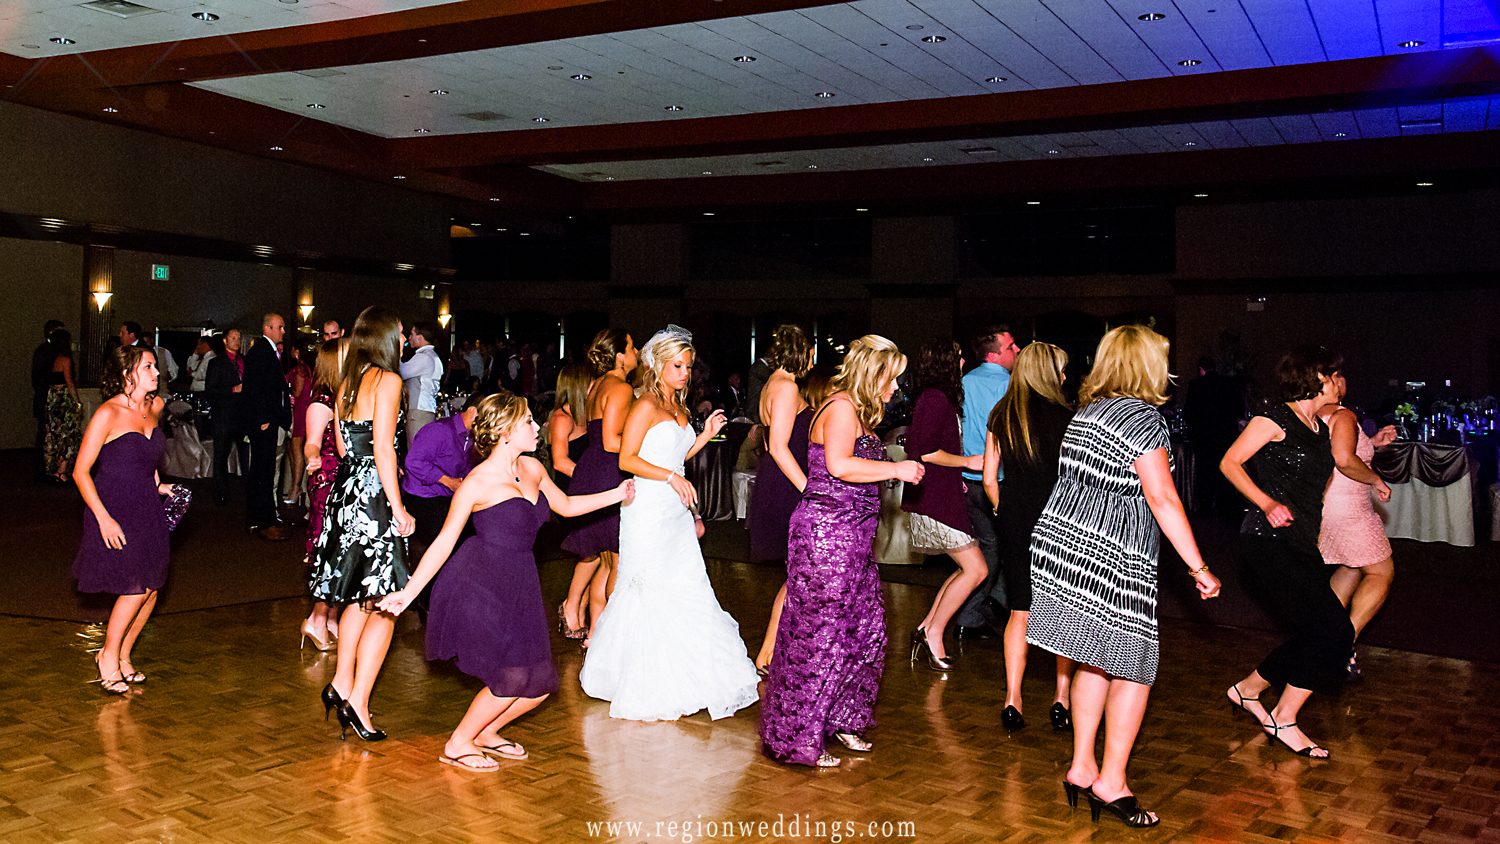 Line dancing during a wedding reception at the Halls of St. George.